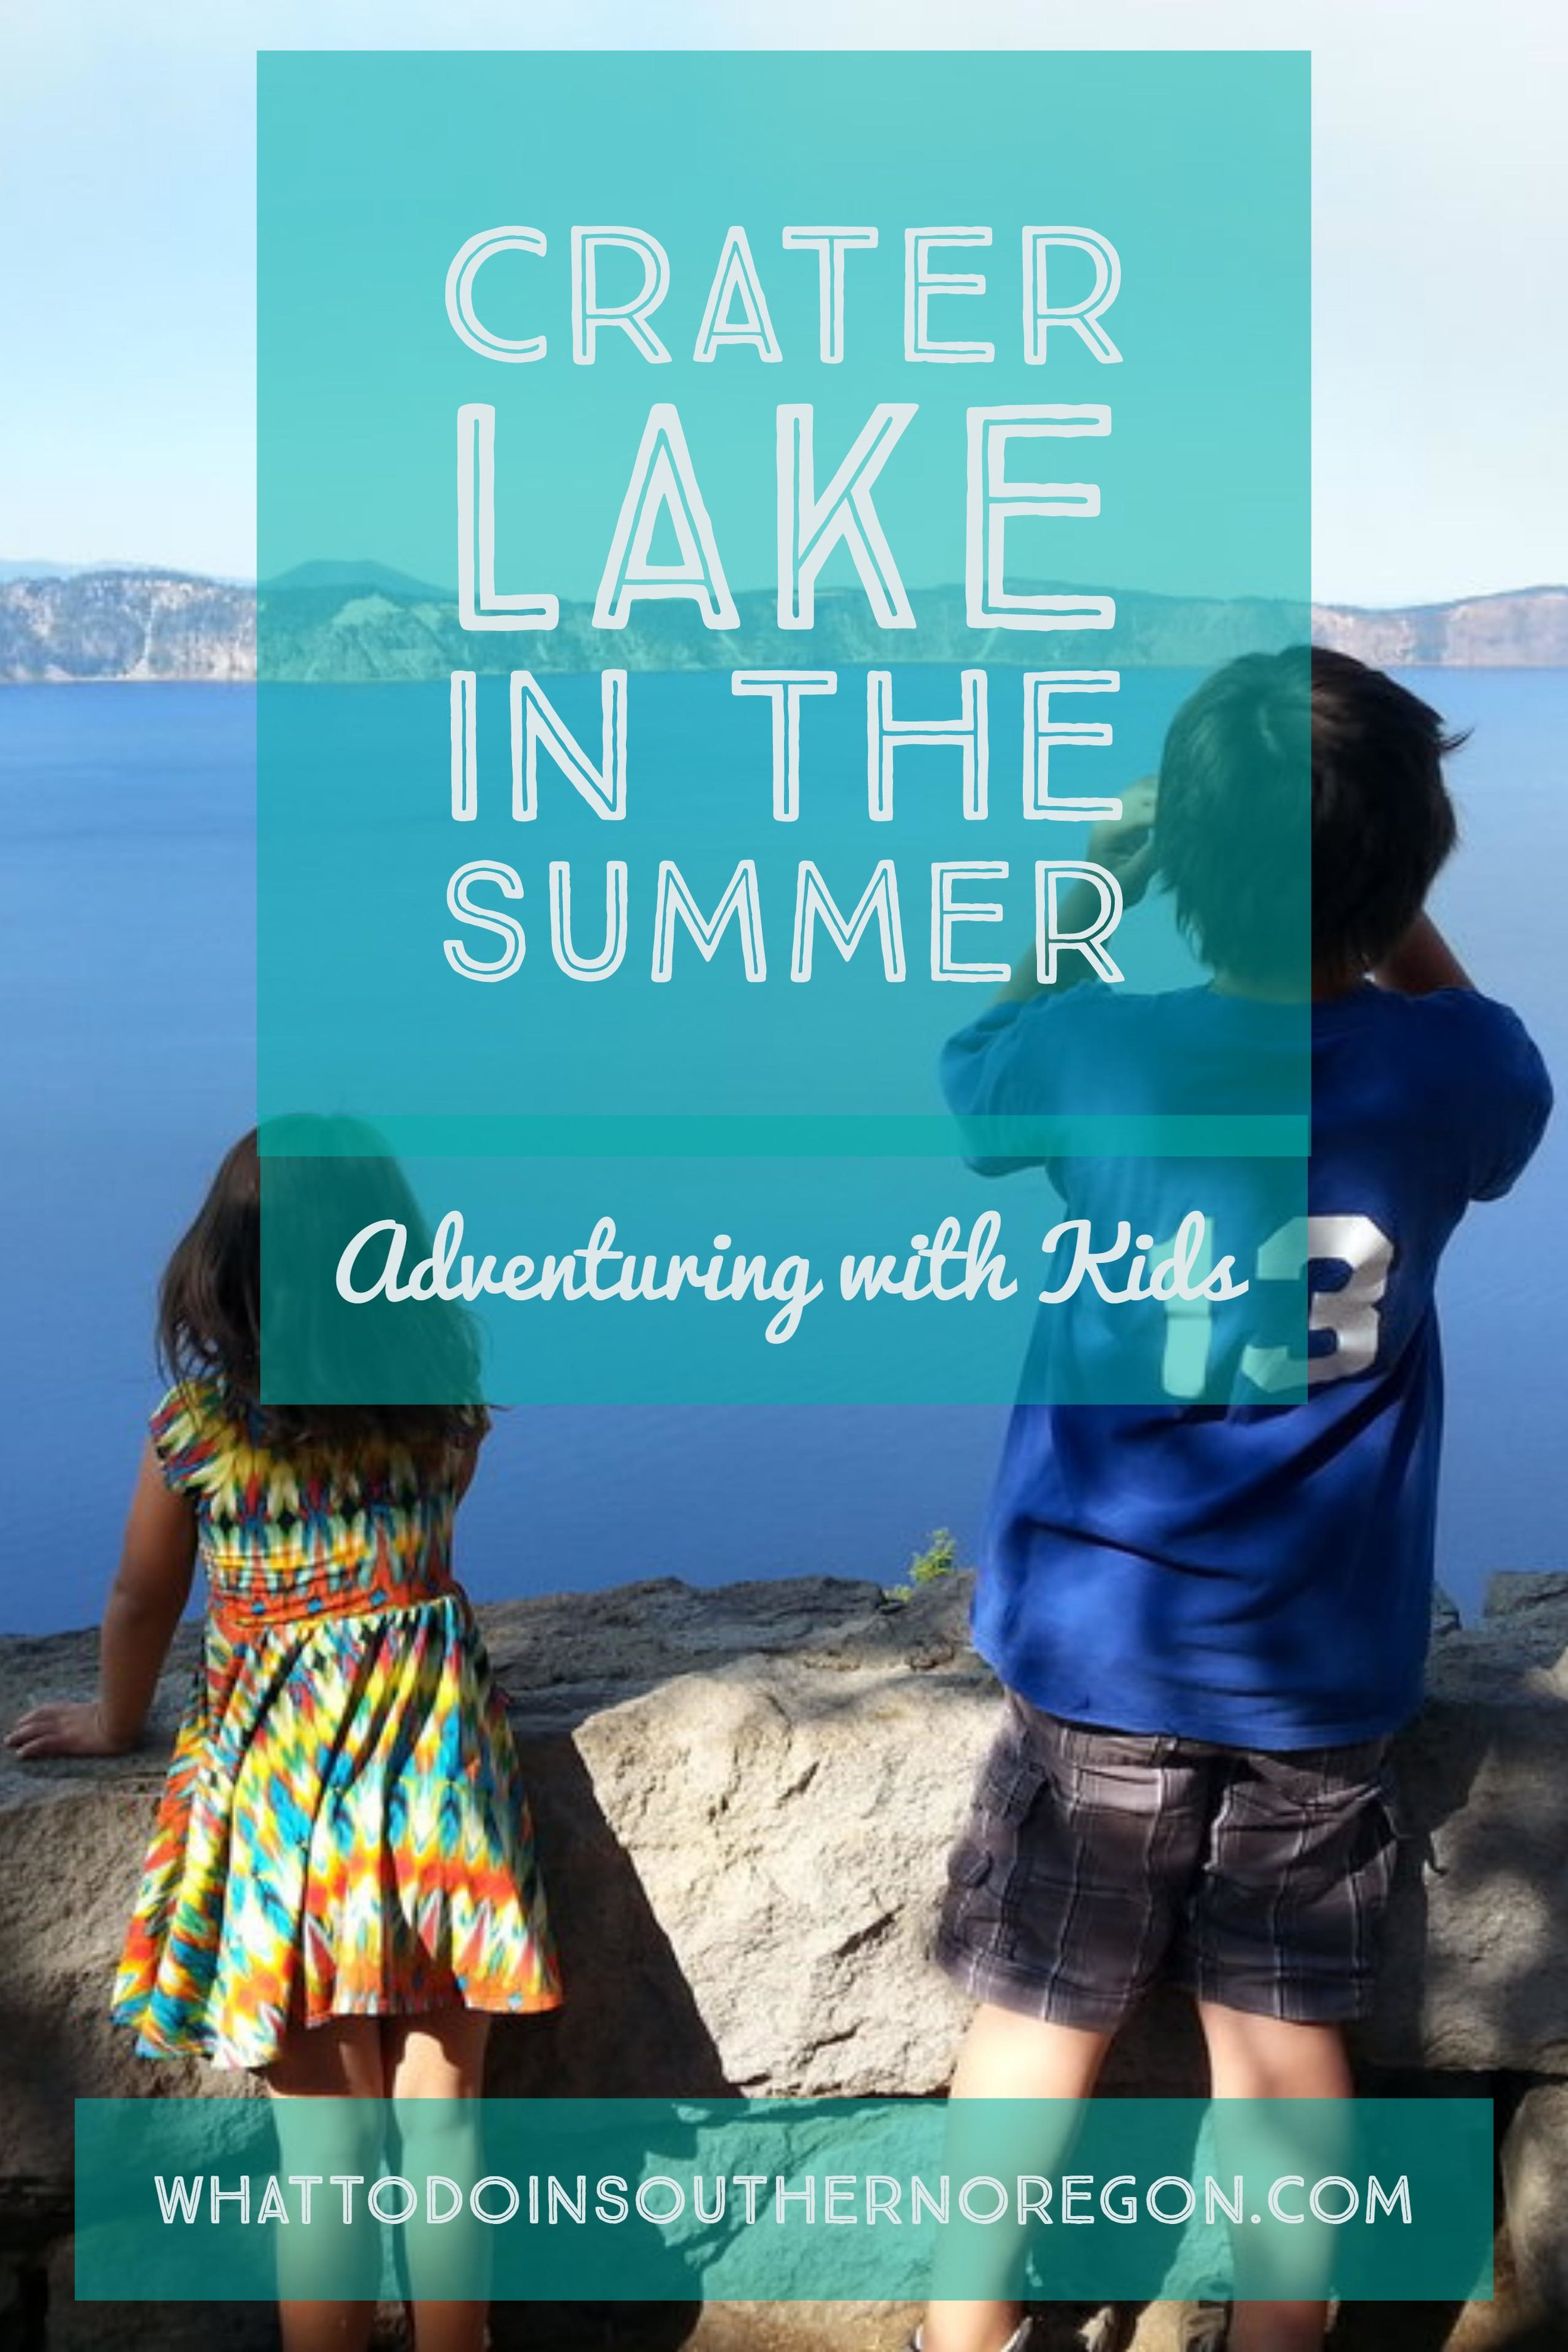 CRATER LAKE IN THE SUMMER - ADVENTURING WITH KIDS - What to do in Southern Oregon -  Things to do - Kids - Hiking - Junior Rangers